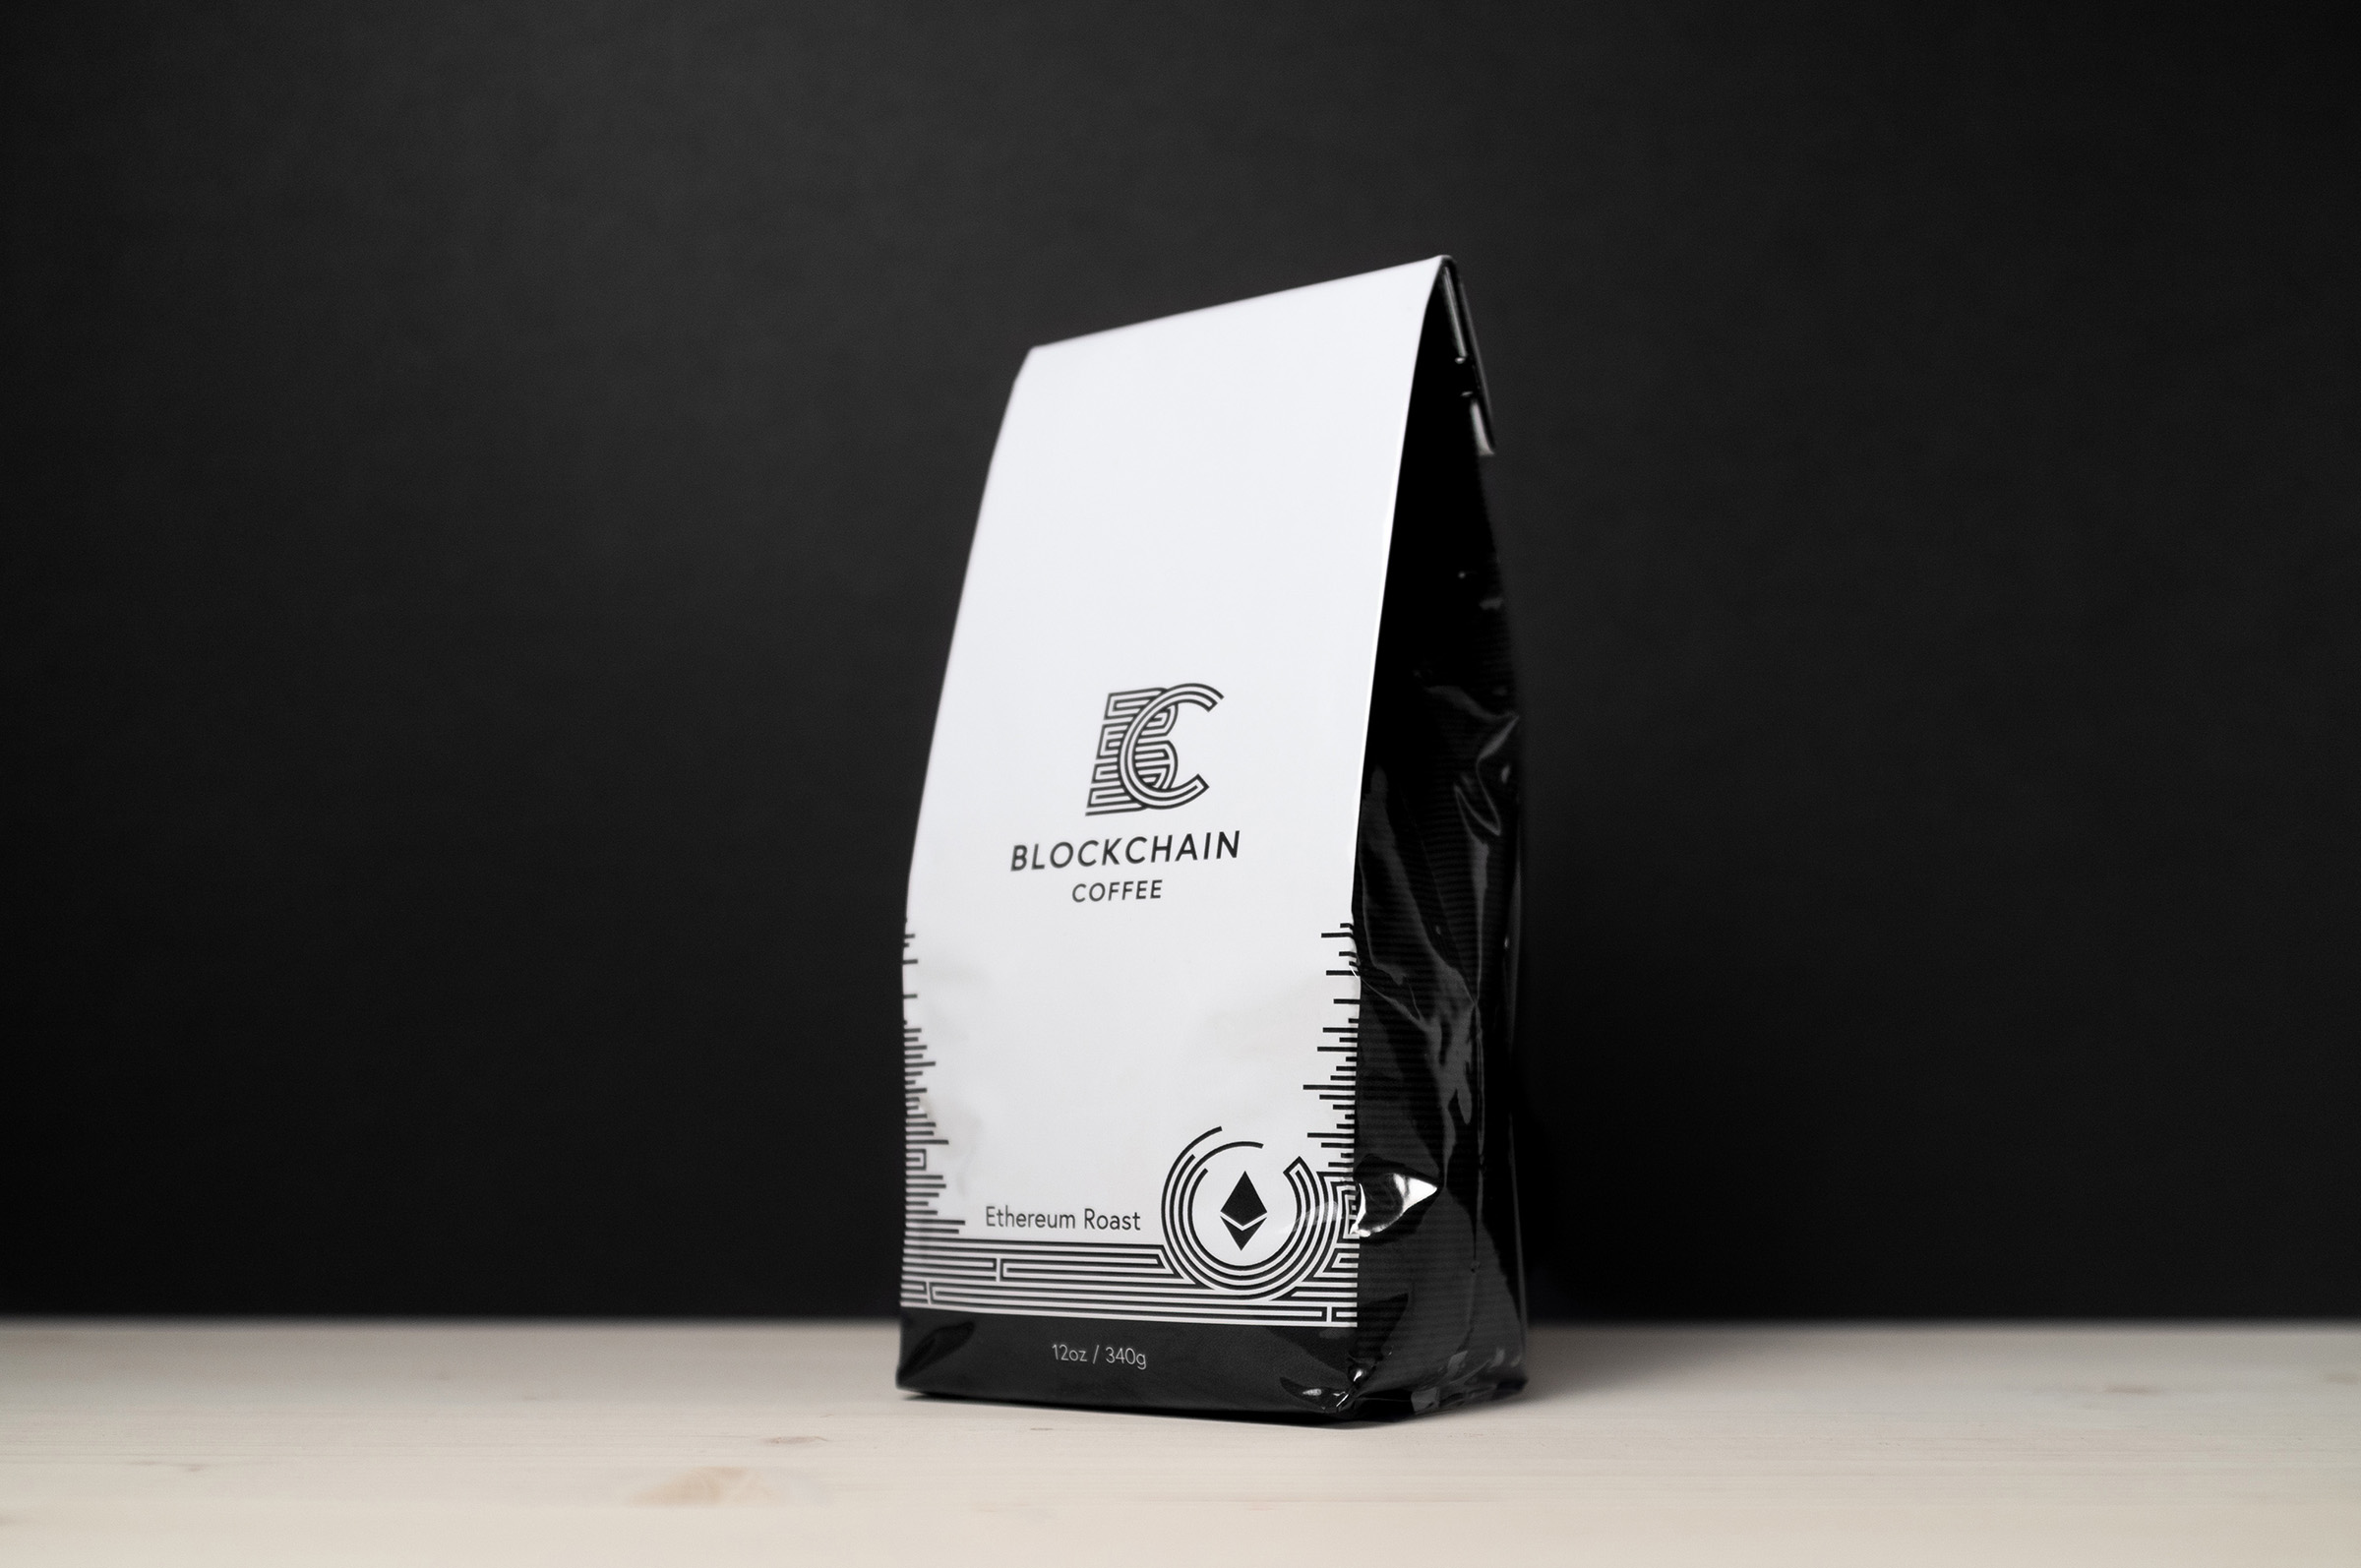 Consumer Brand Identity and Packaging Design for an Upcoming Online Coffee Store / World Brand & Packaging Design Society